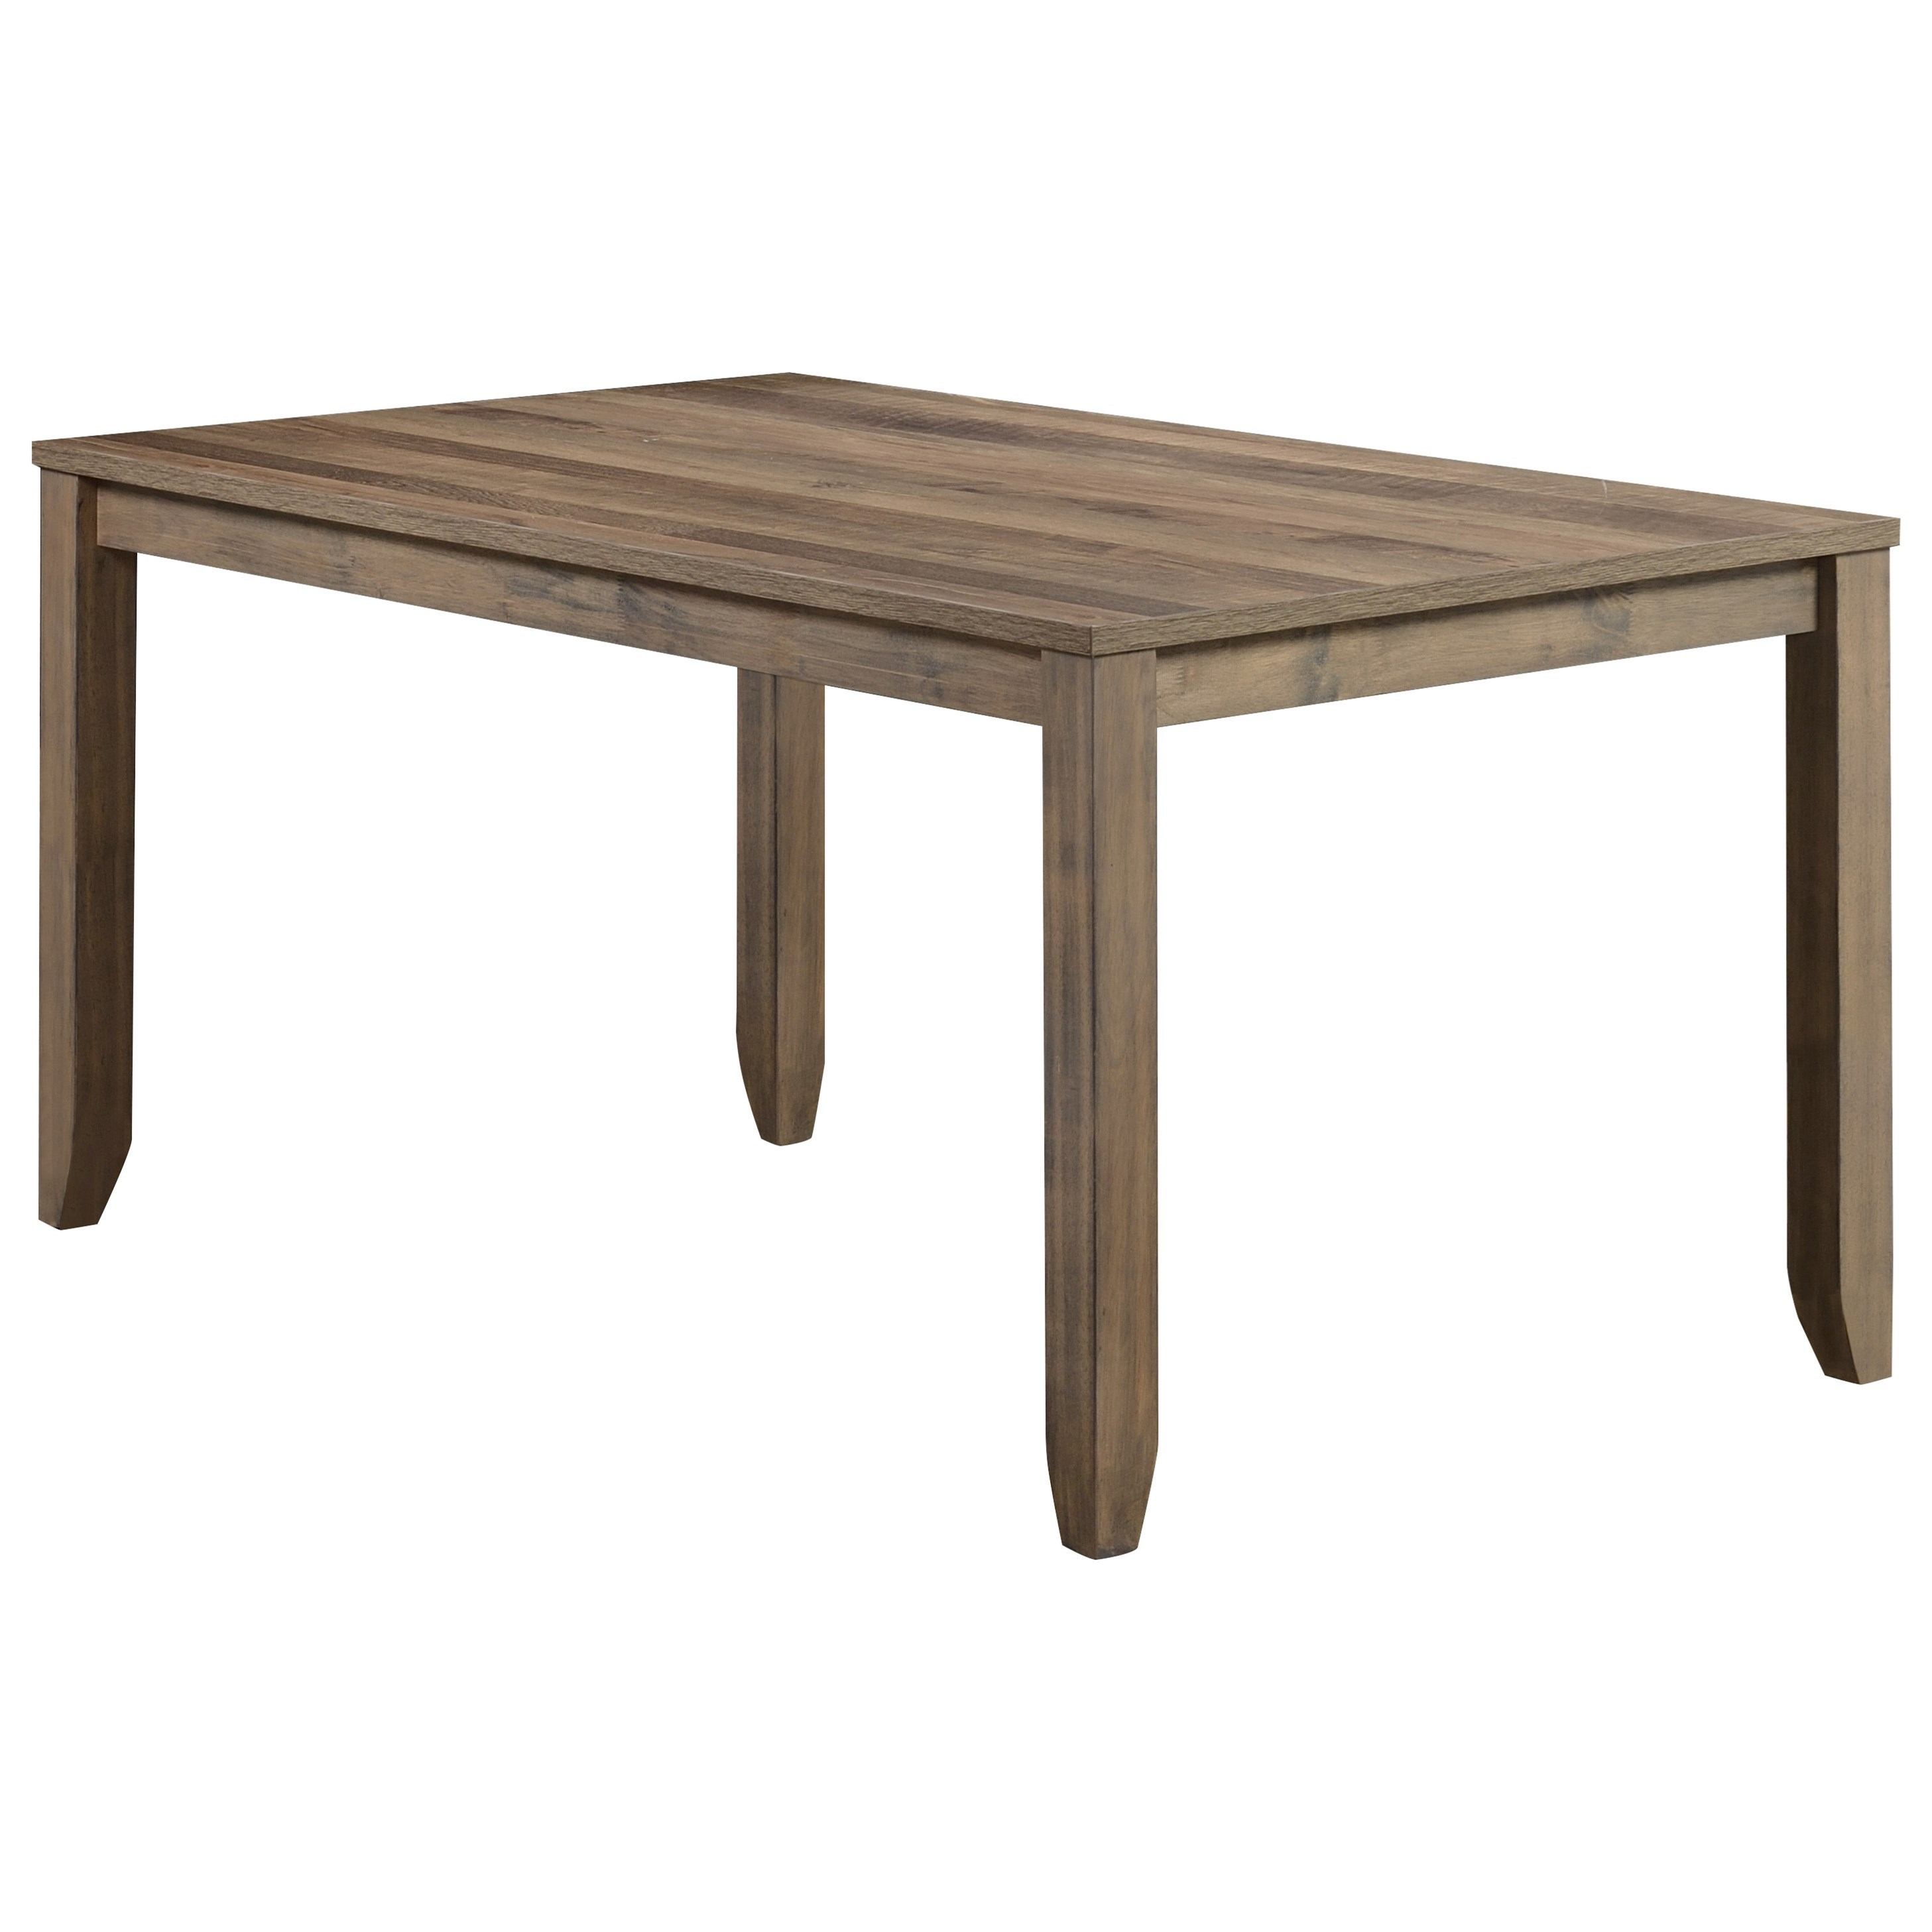 Sean Melamine Dining Table by Crown Mark at Catalog Outlet